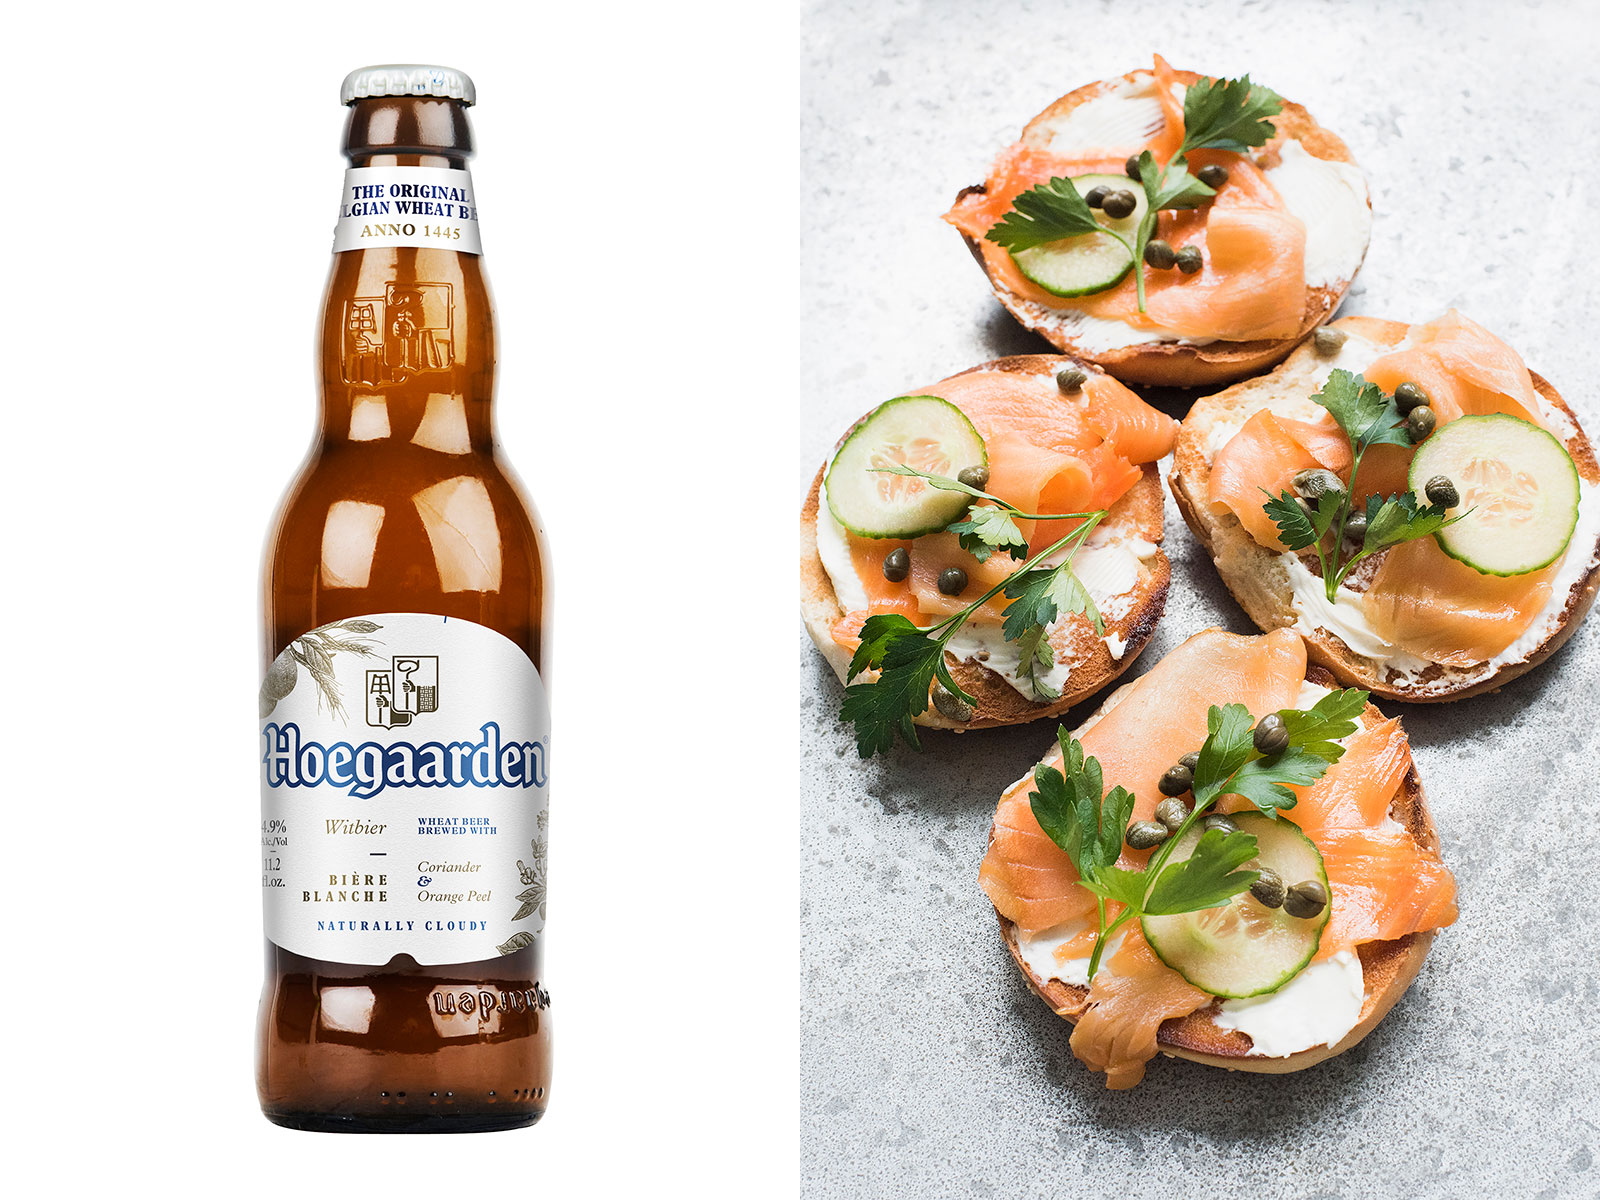 Bagel and Lox and Hoegaarden